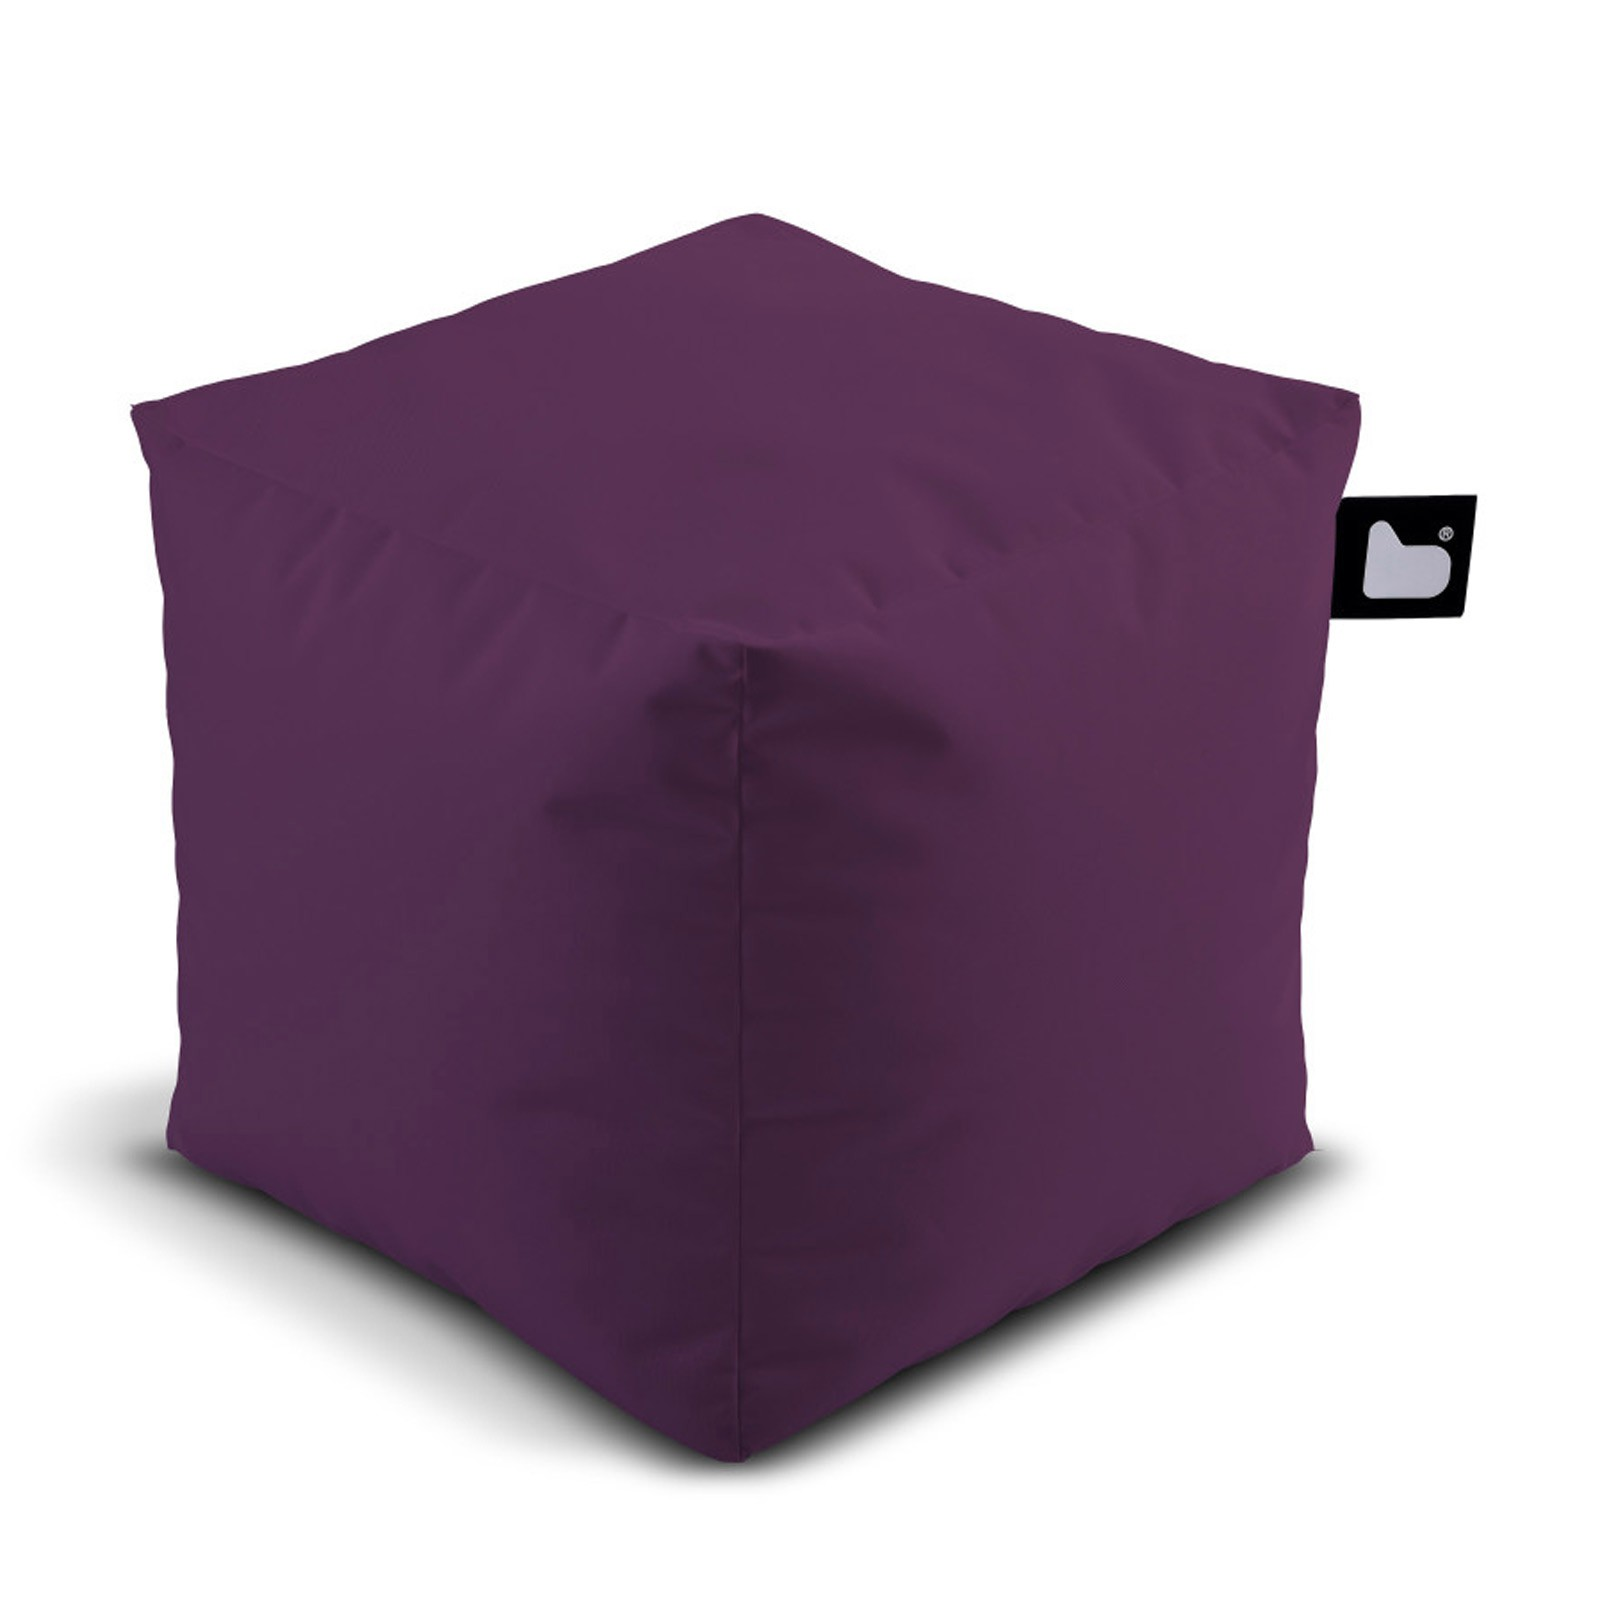 b-bag Extreme Lounging Sitzwürfel/Fußhocker Indoor-/Outdoor b-box Farbe Berry